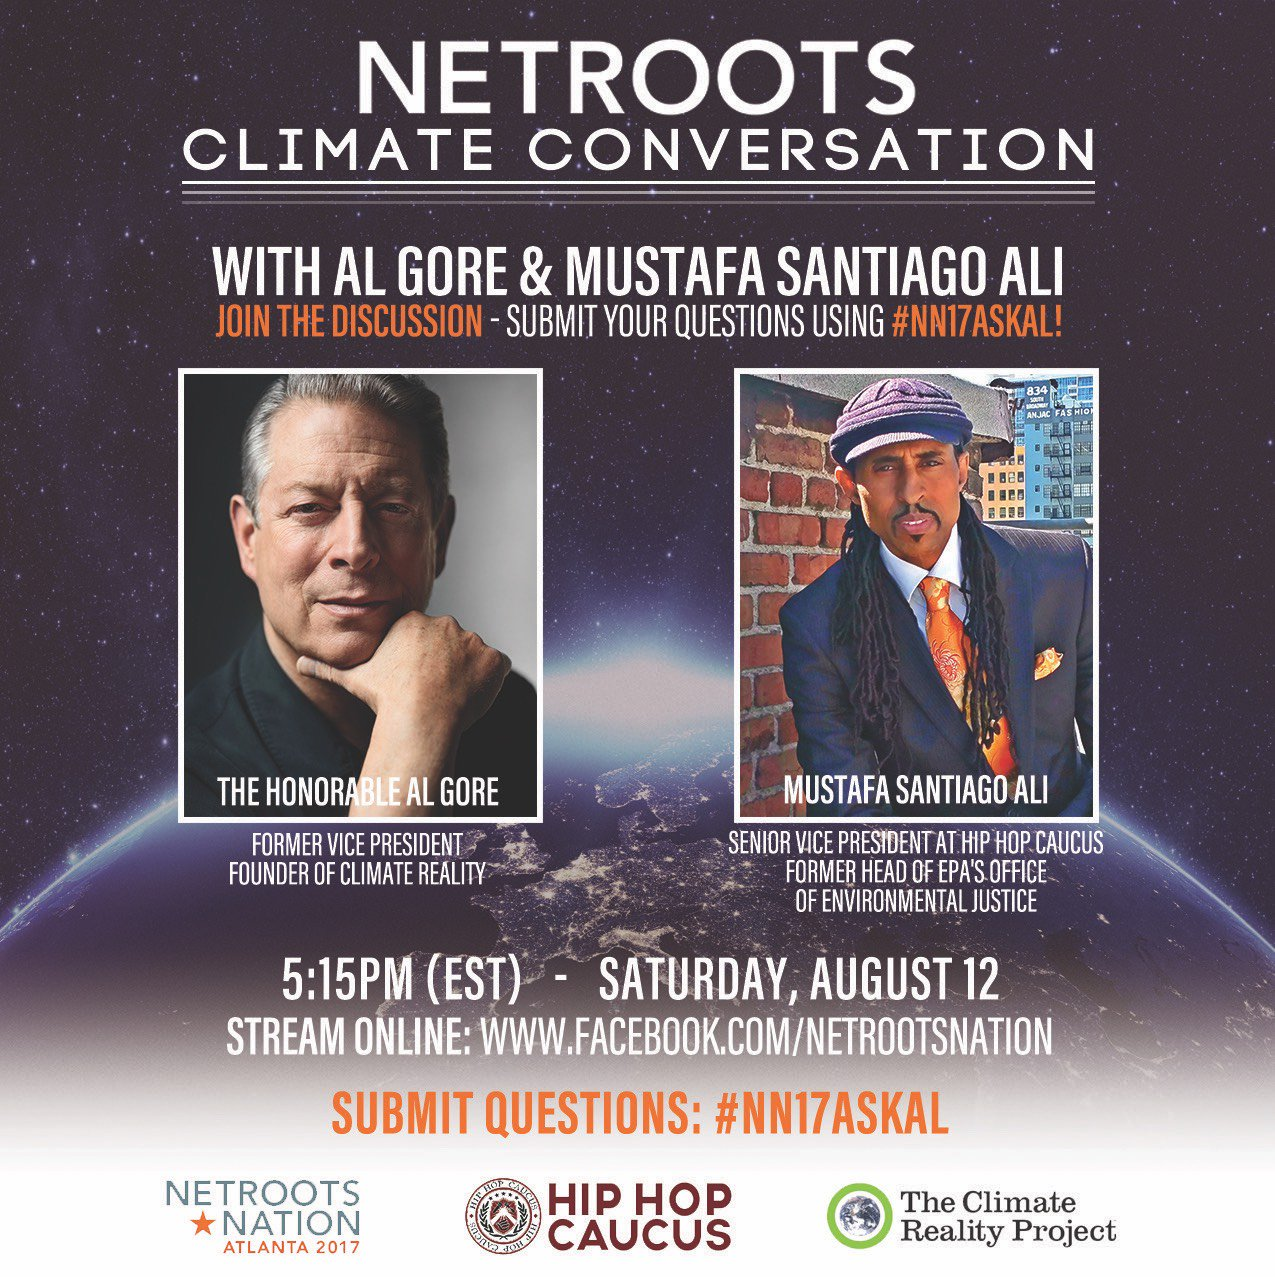 Excited to join @EJinAction of @HipHopCaucus on stage in Atlanta for #NN17ASKAL! https://t.co/Scue6SNIha